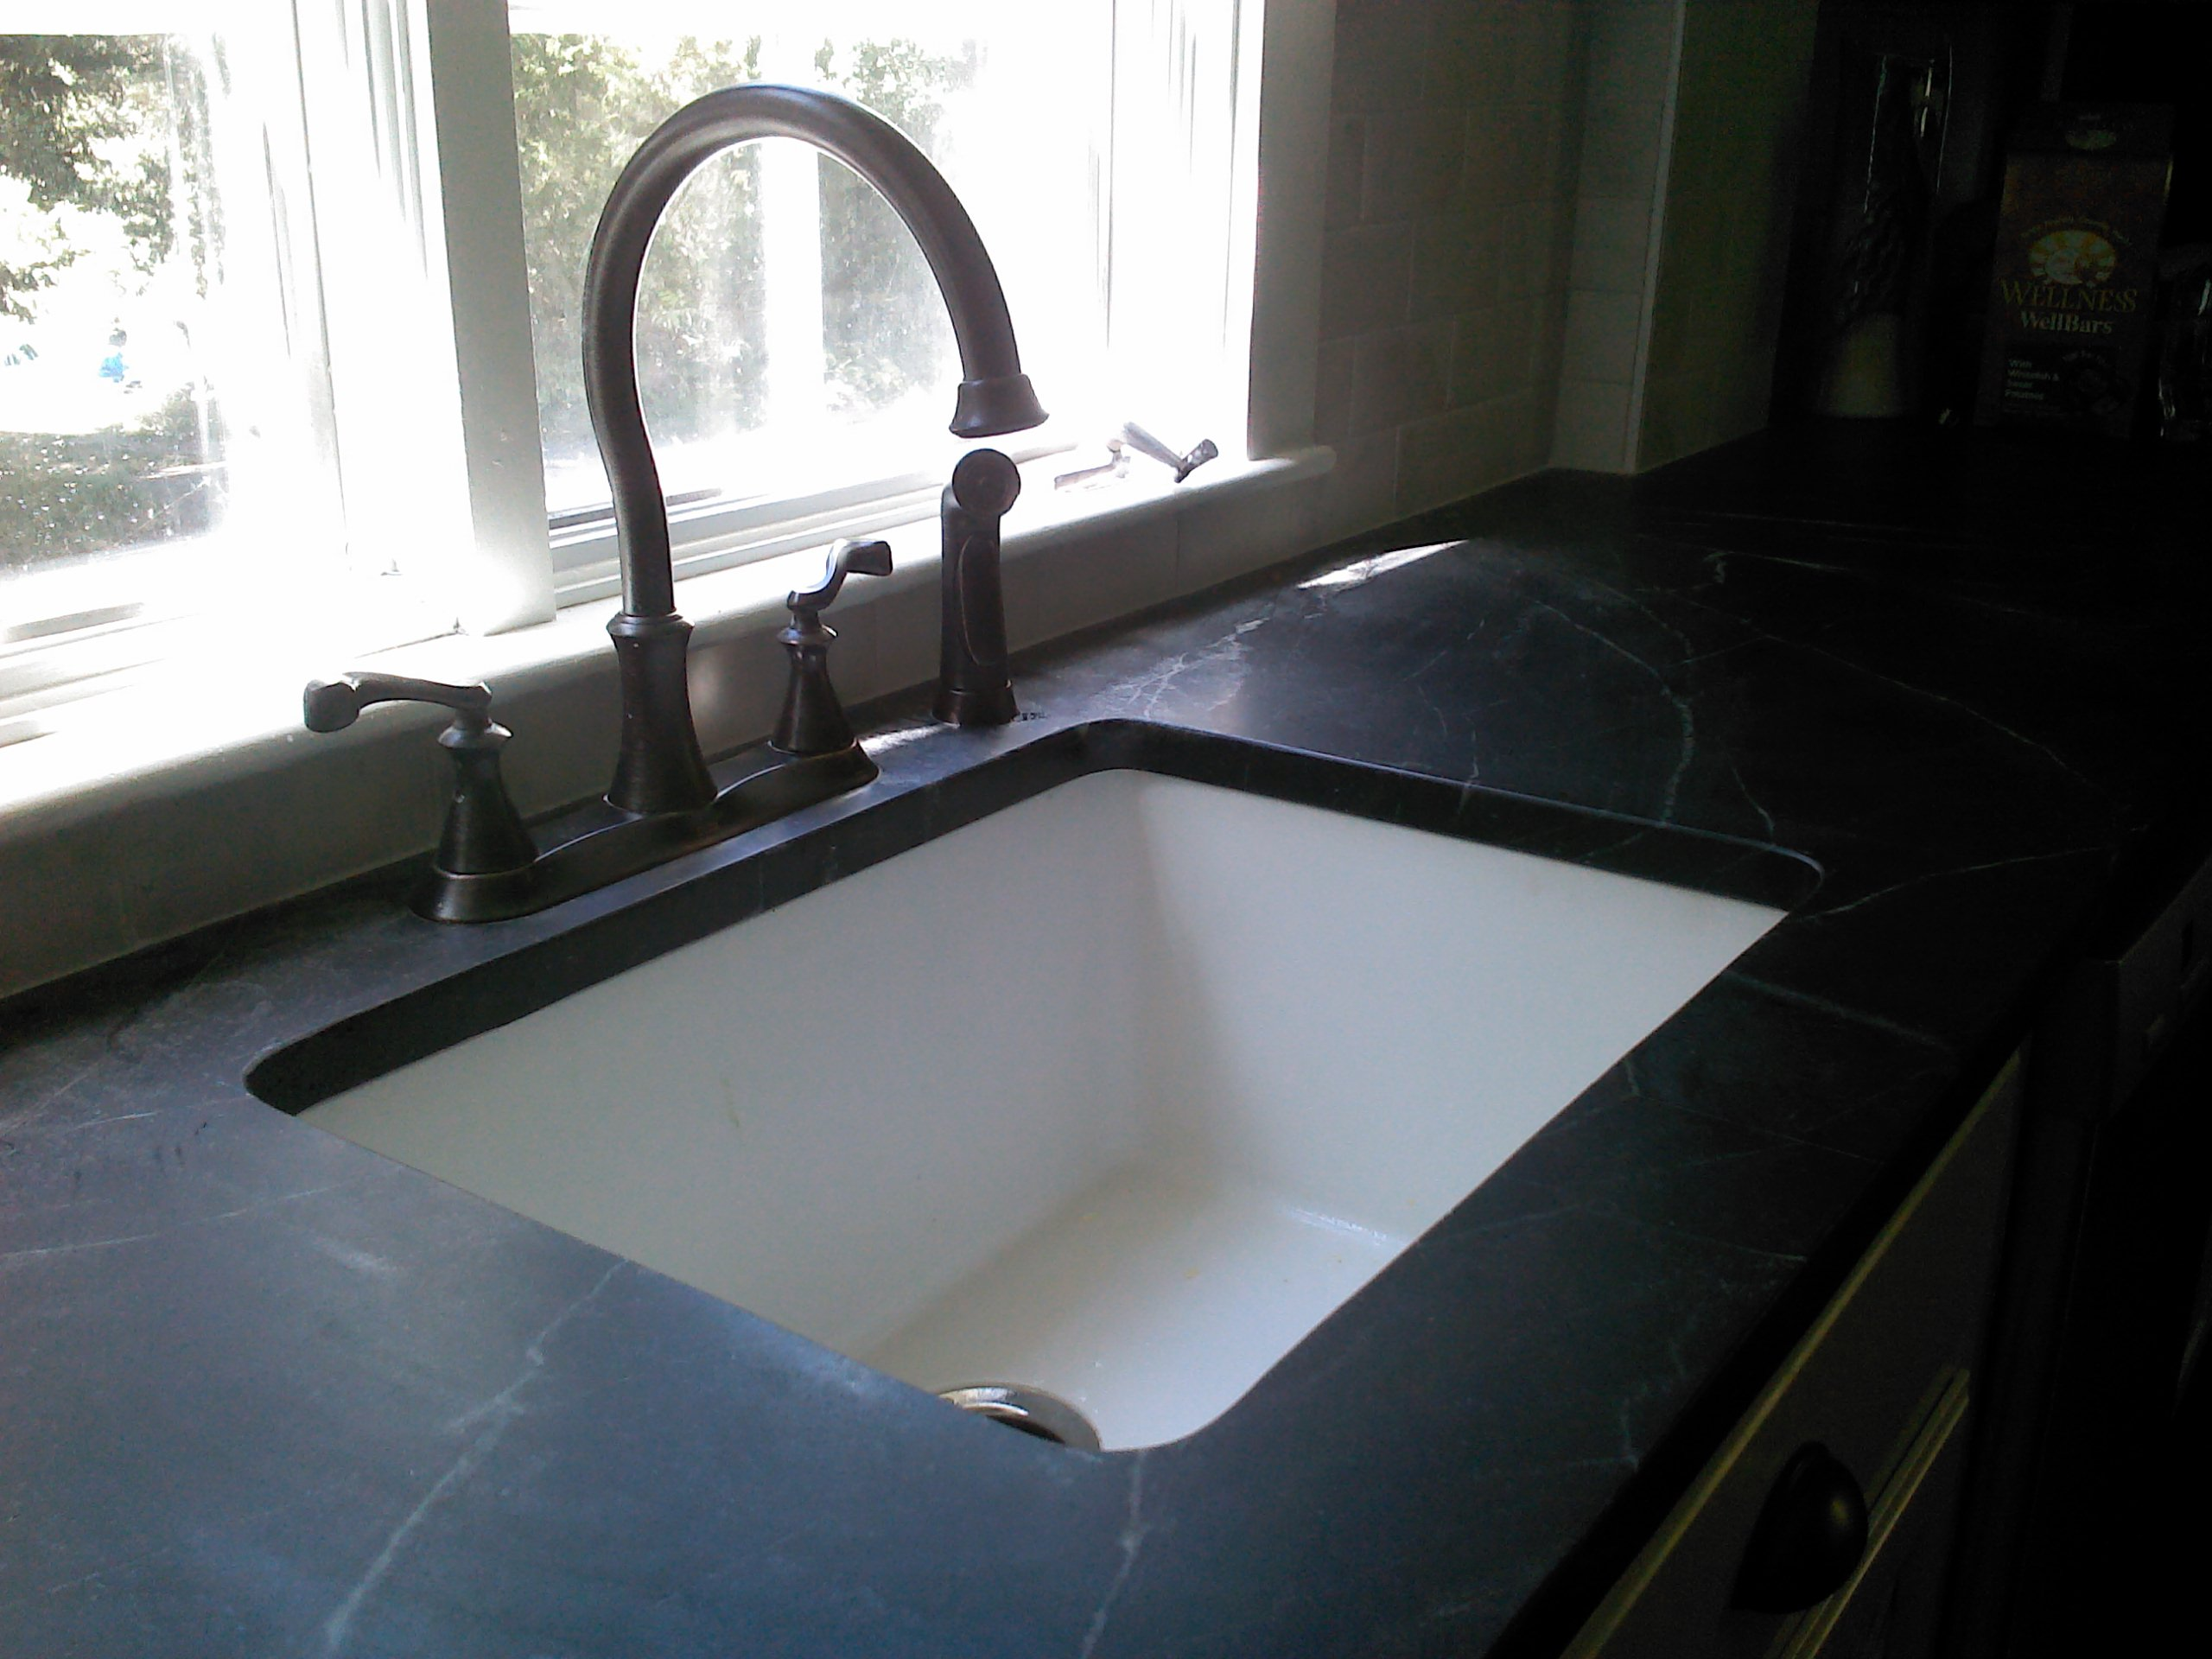 Kitchen countertops and sinks - Kitchen Countertops And Sinks 23